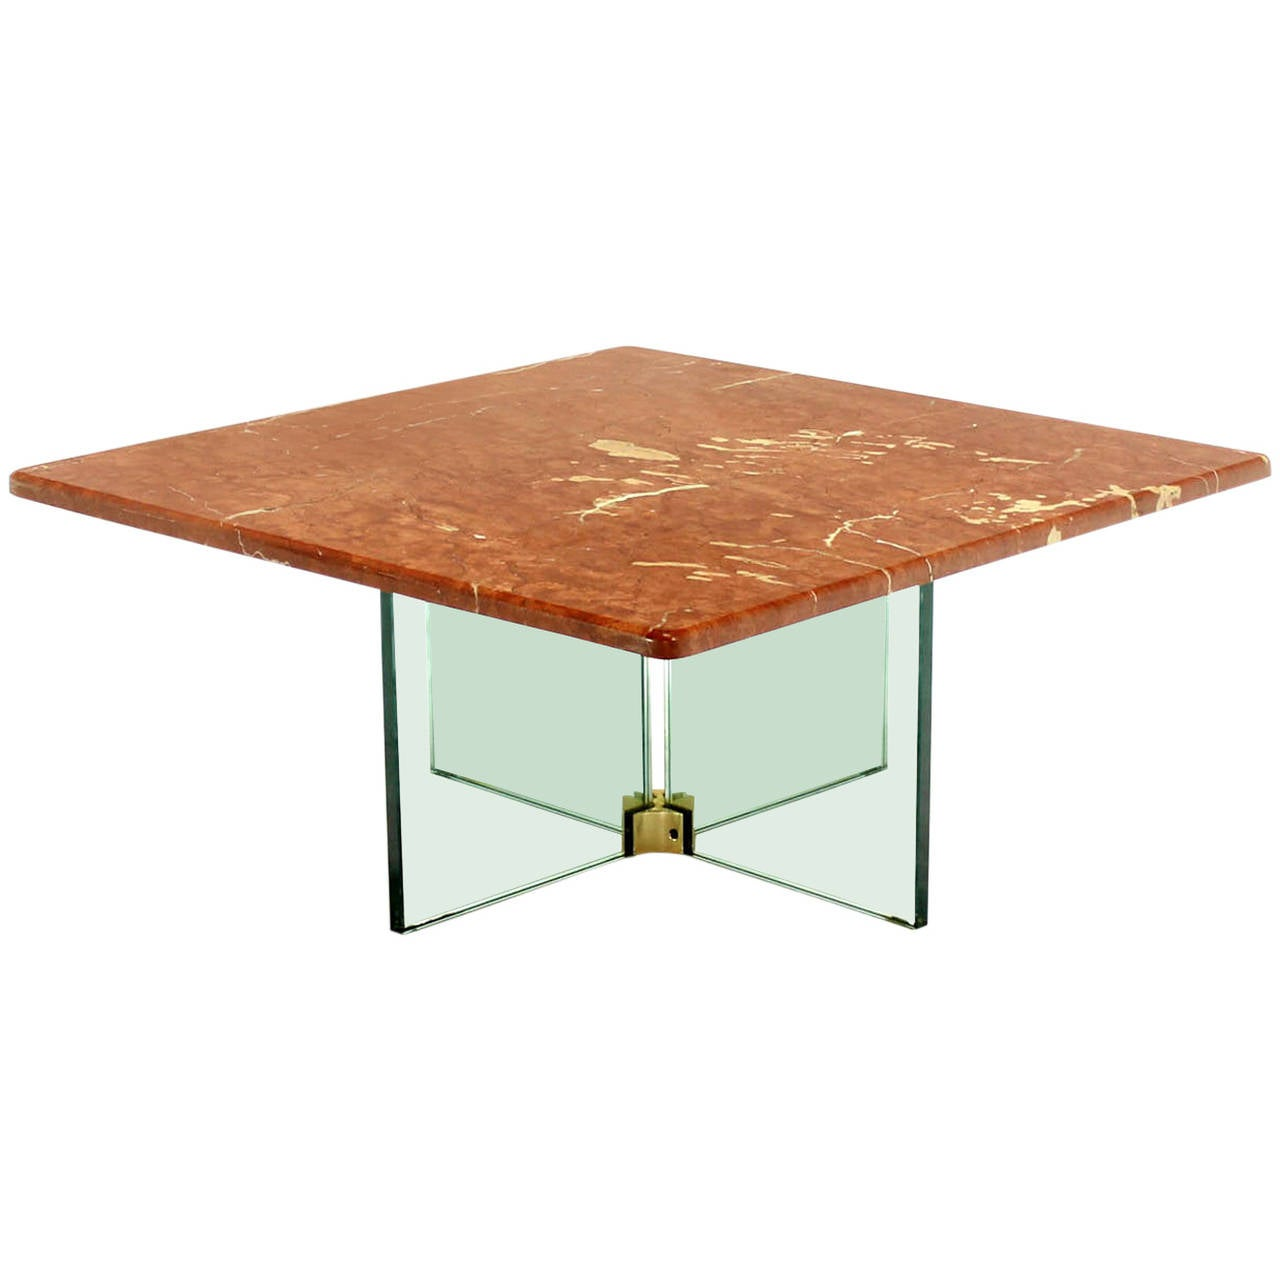 Glass x cross base coffee table w marble top for sale at for Stone topped coffee tables